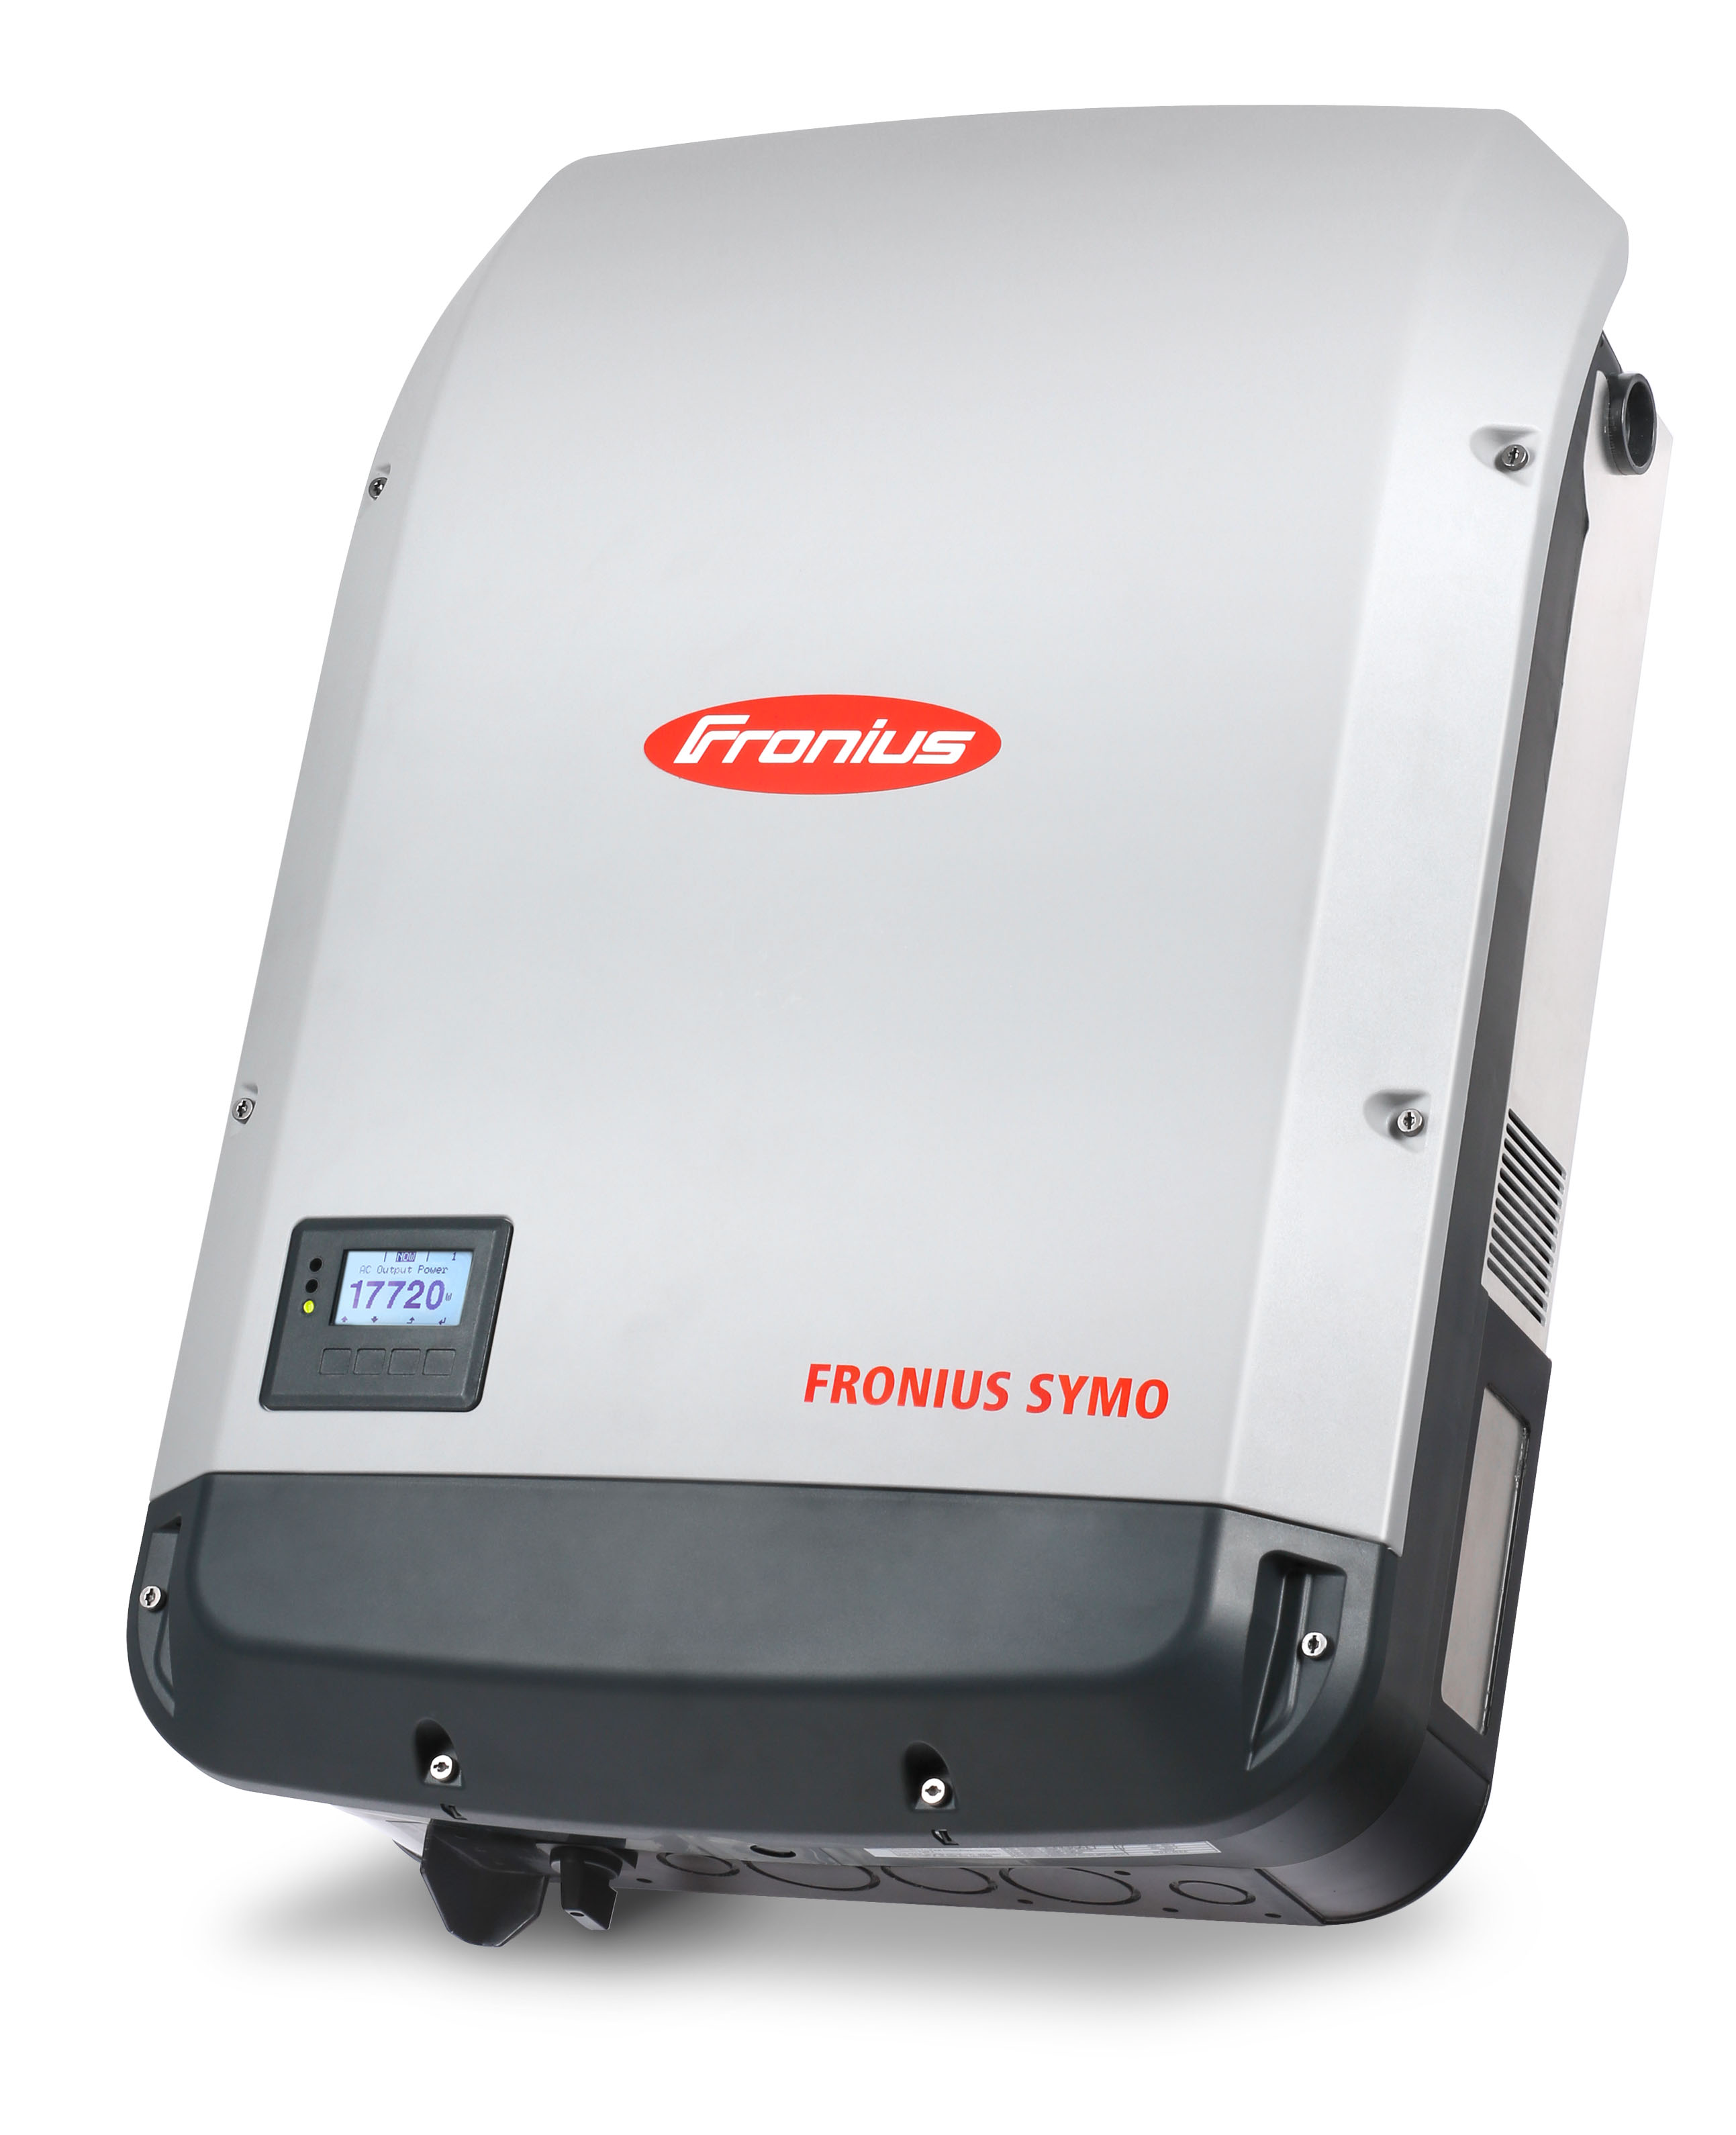 FRONIUS, SYMO 12.5-3 480, NON-ISOLATED STRING INVERTER, 10 KW, 480 VAC, LITE - NO DATAMANAGER 2.0 CARD